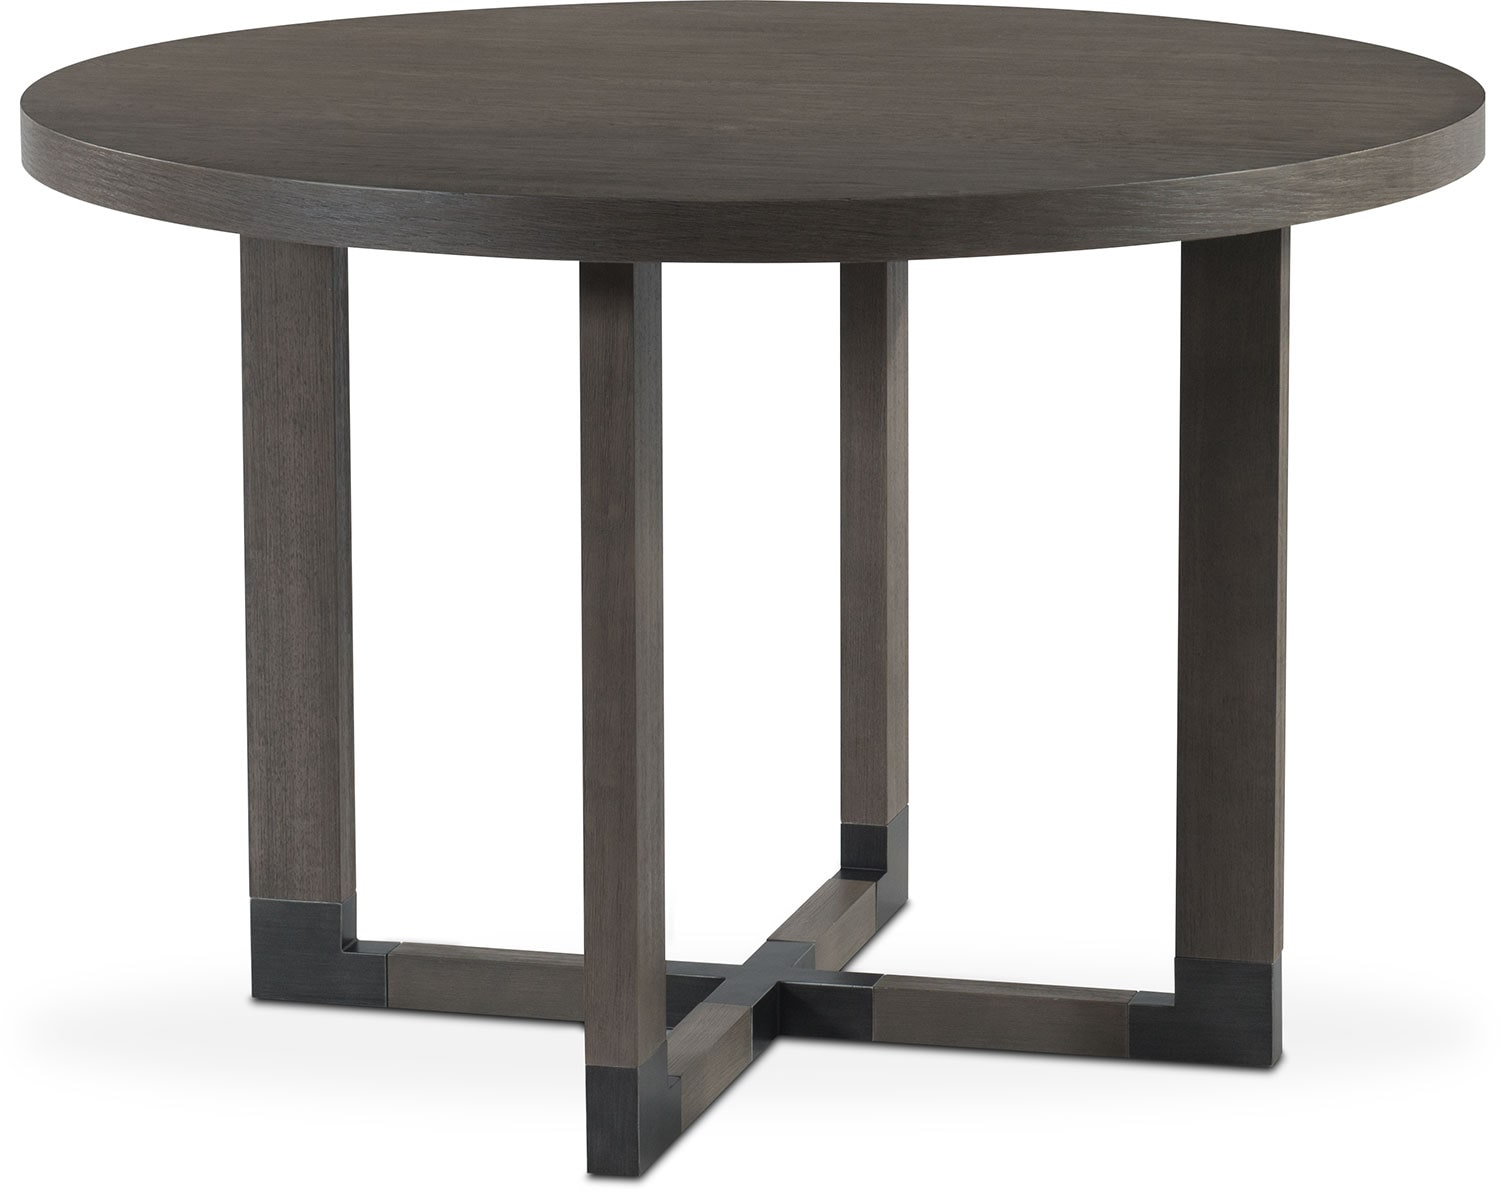 Malibu Round Counter Height Wood Top Table   Gray